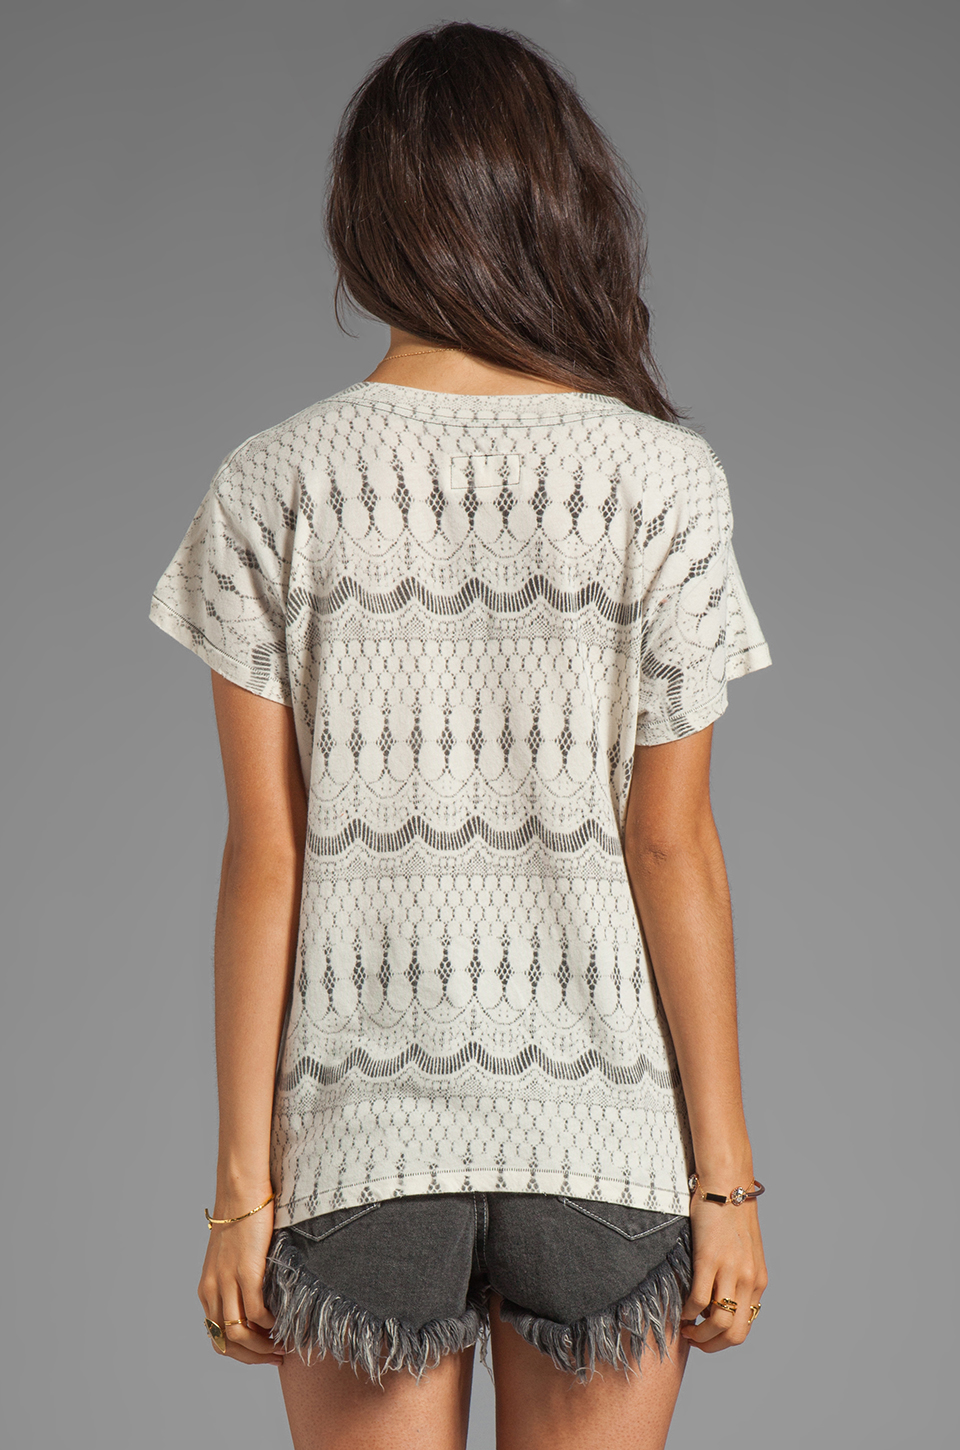 Current/Elliott The Freshman Tee in Natural Lace